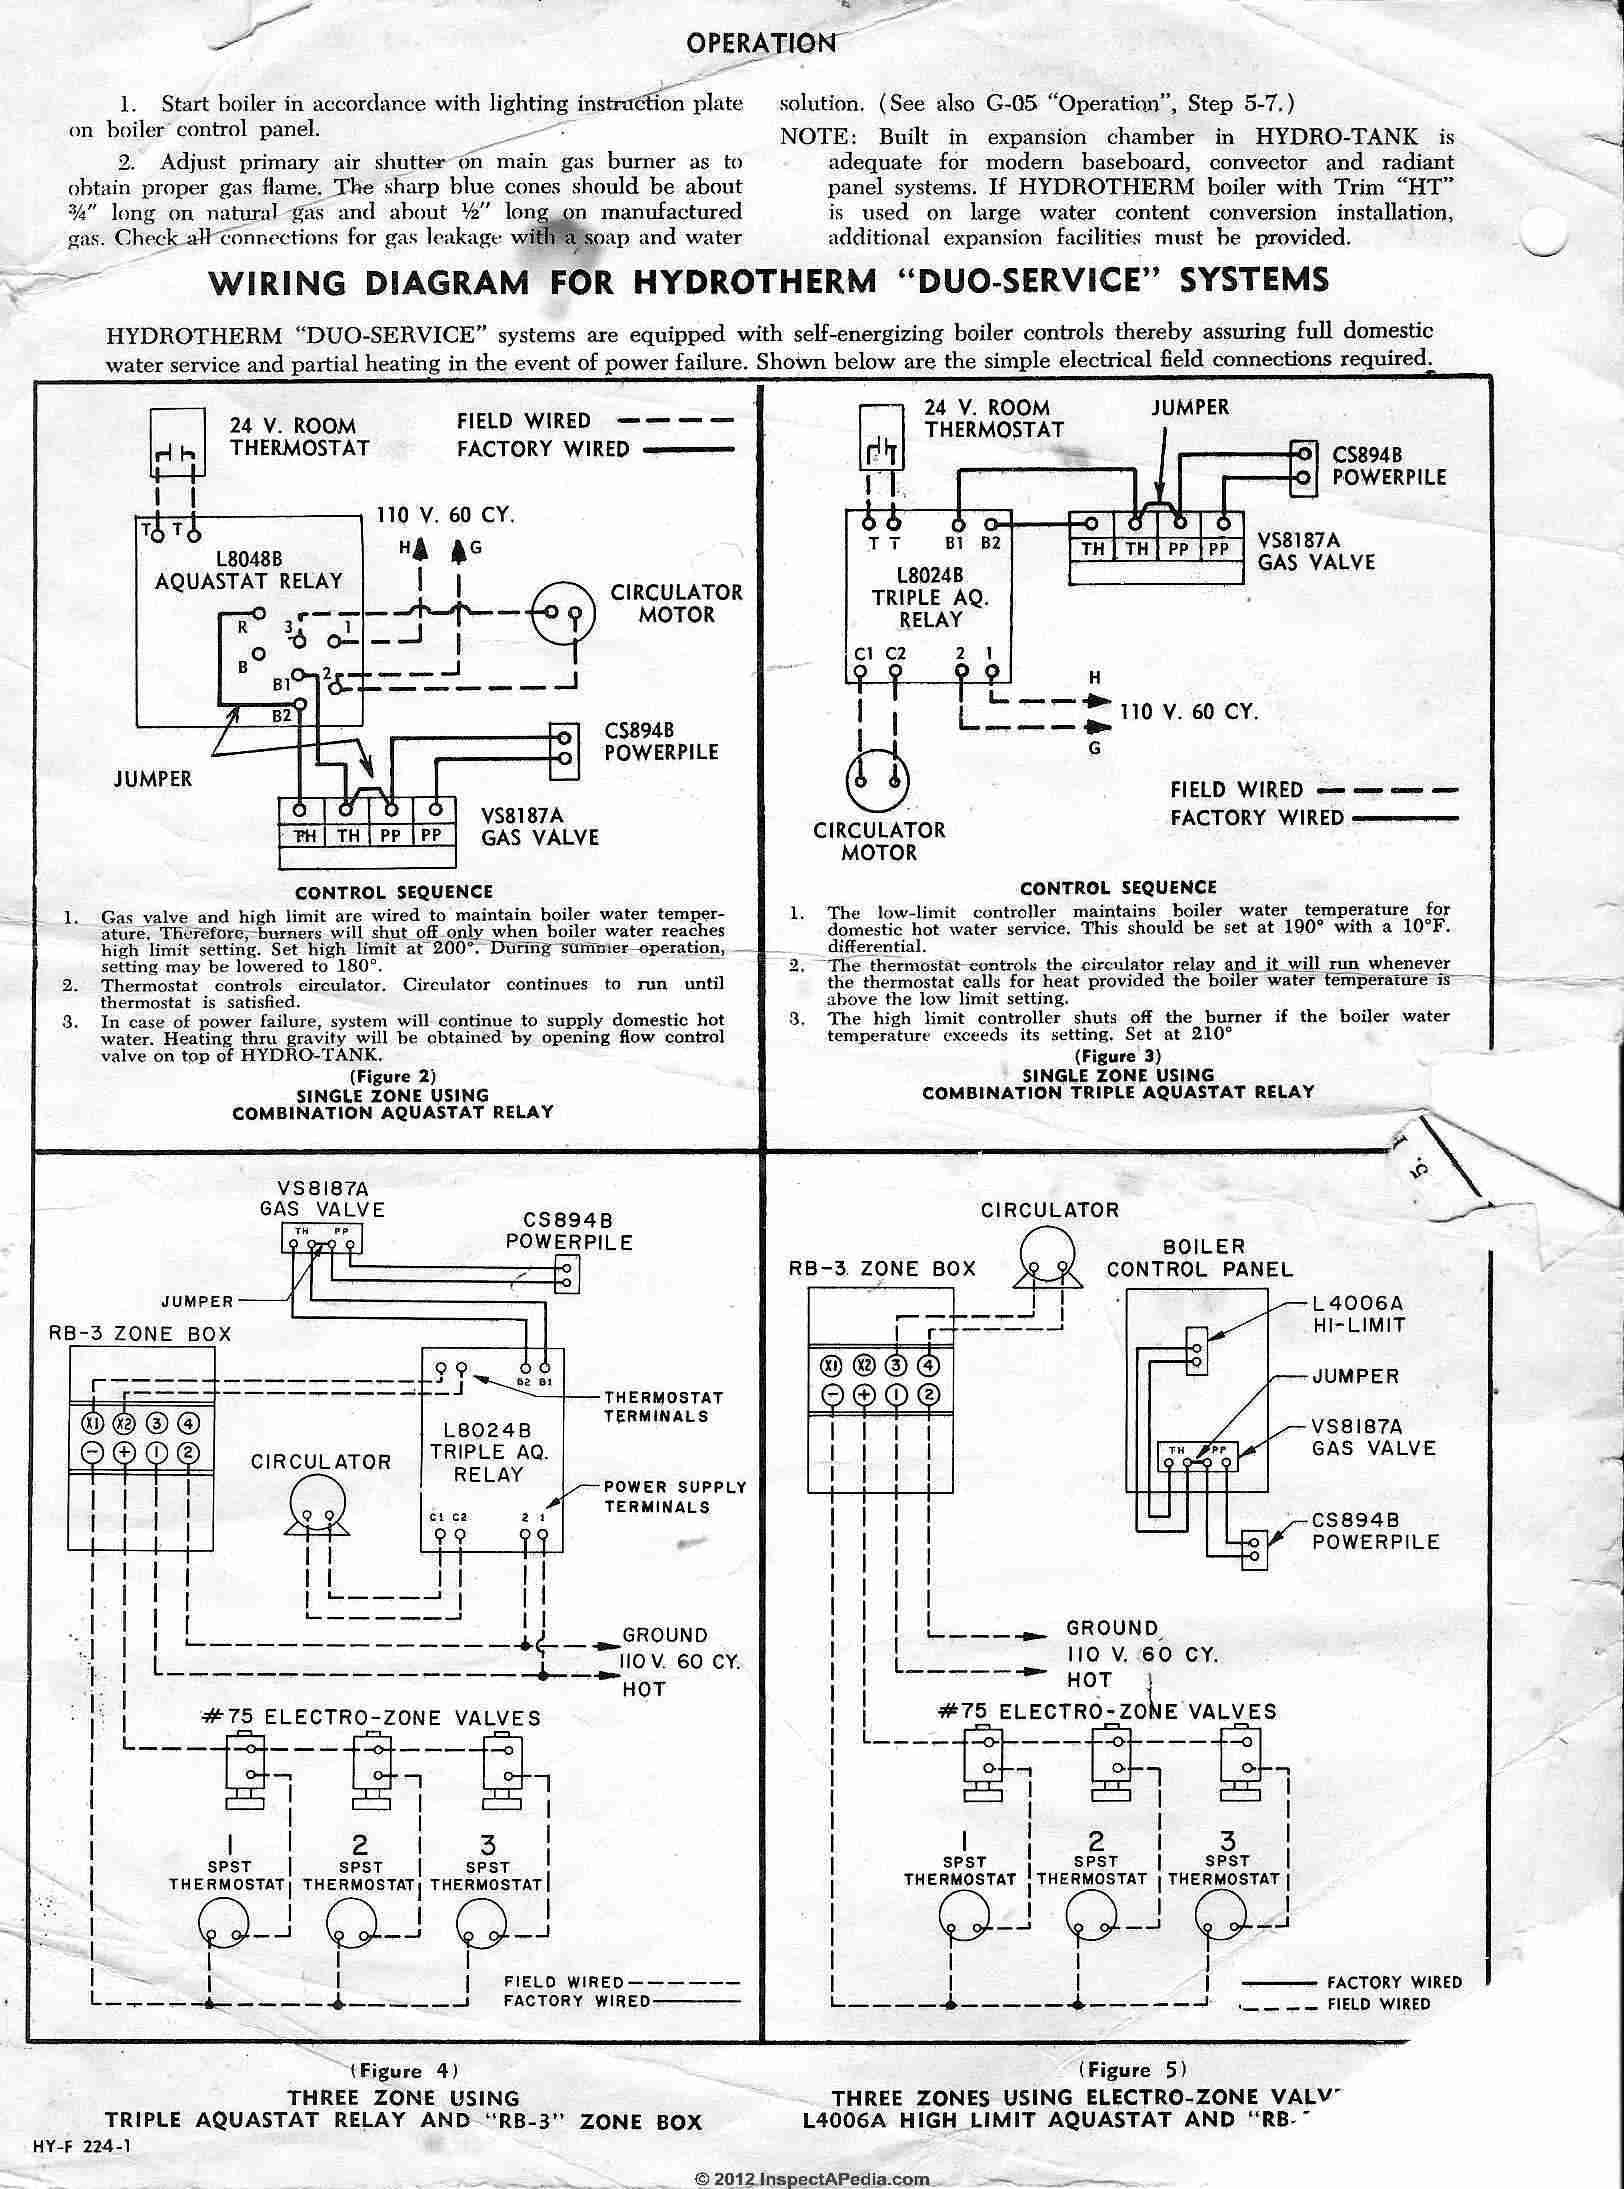 L8024B_Aquastat_0422_DJFcs heating boiler aquastat control diagnosis, troubleshooting, repair amtrol boilermate wiring diagram at cos-gaming.co